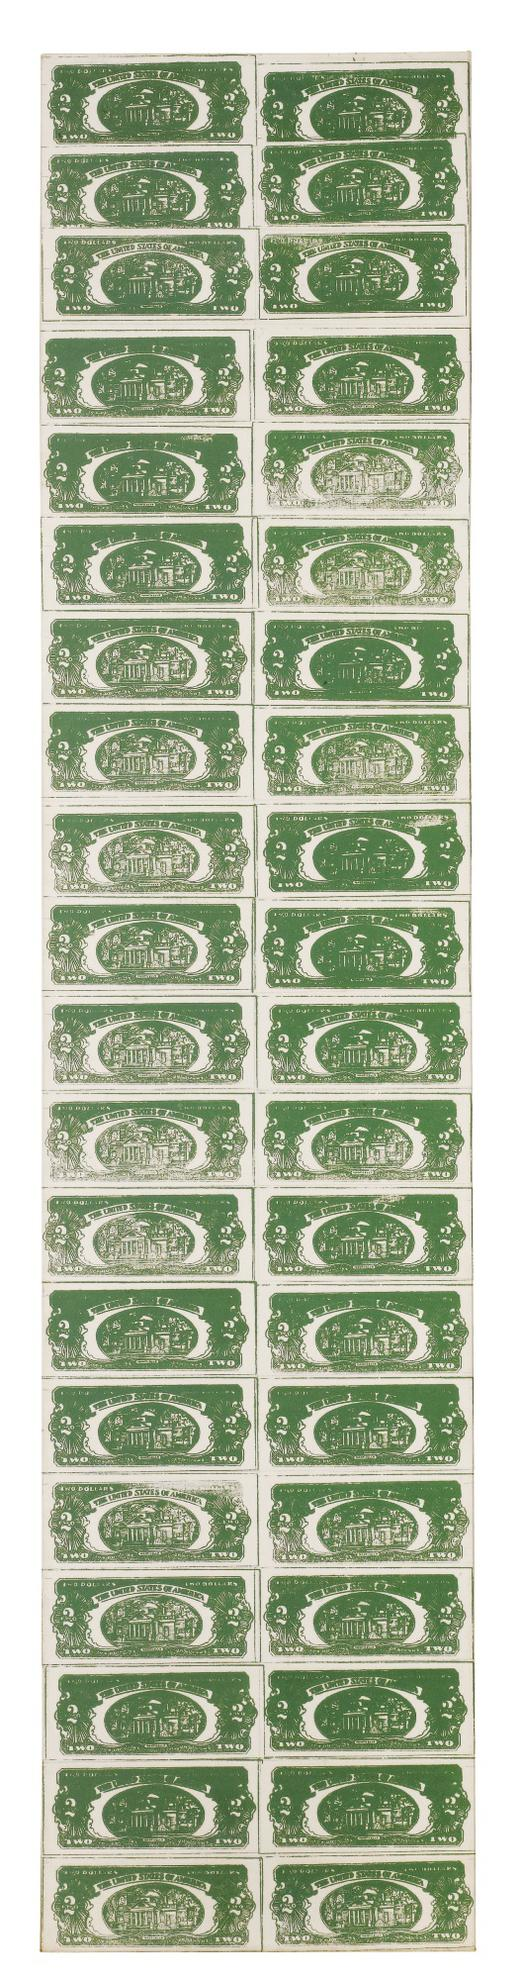 Andy Warhol-Two Dollar Bills (Back) (40 Two Dollar Bills In Green)-1962